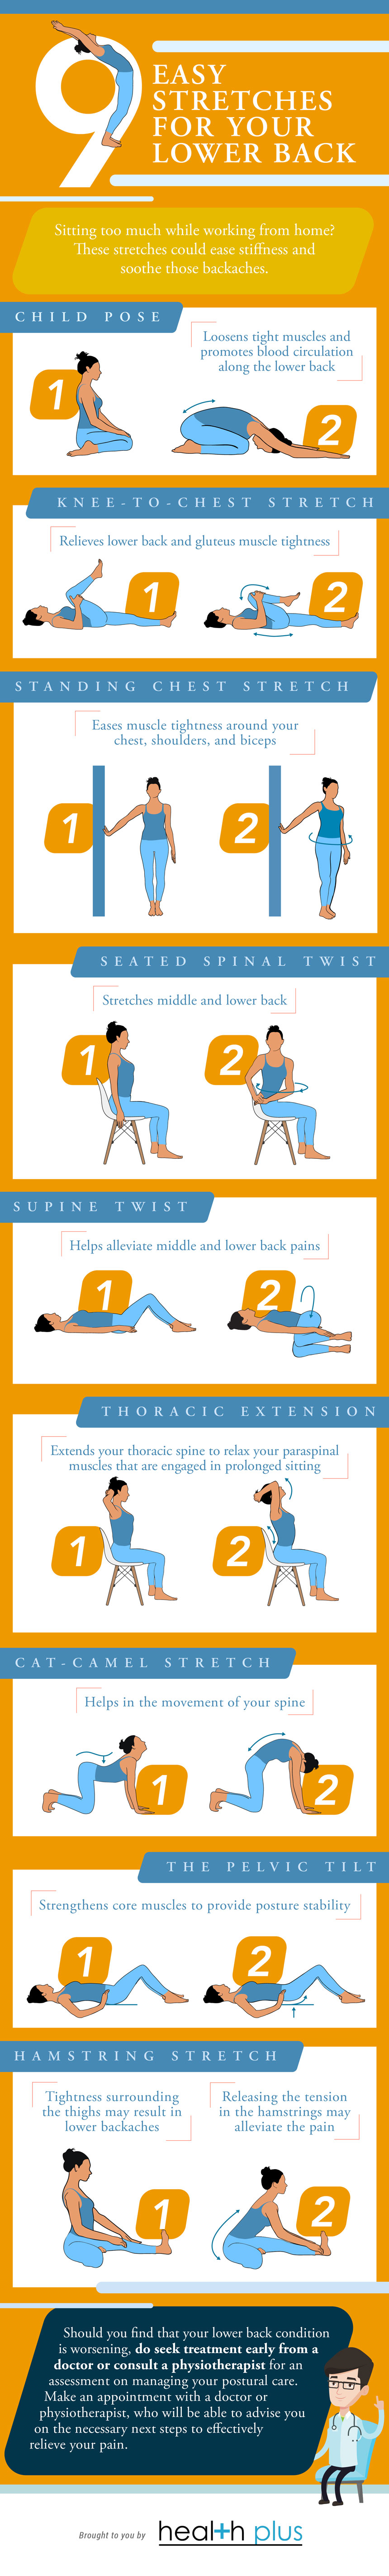 Easy-lower-back-stretches-ig-d